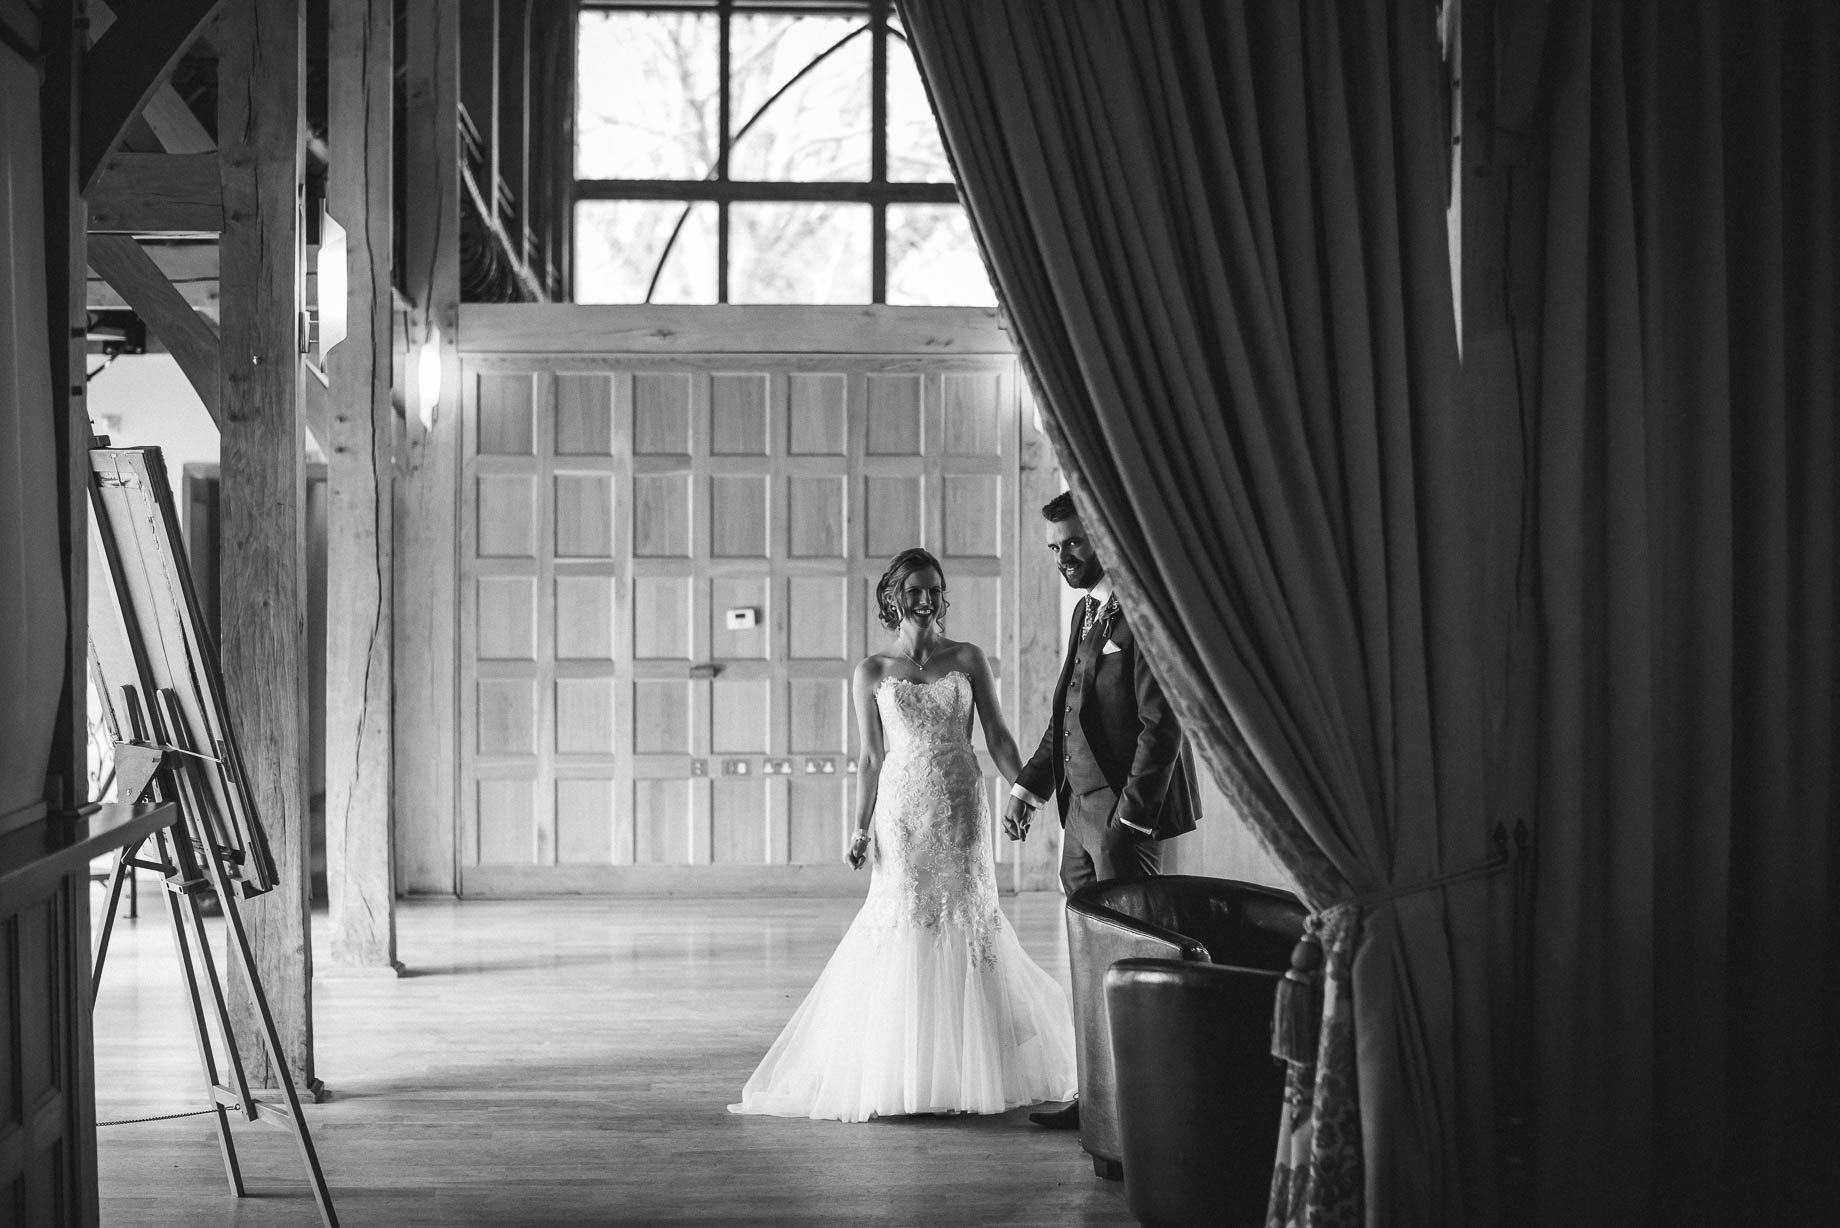 Rivervale Barn wedding photography by Guy Collier - Claire and Simon (106 of 133)